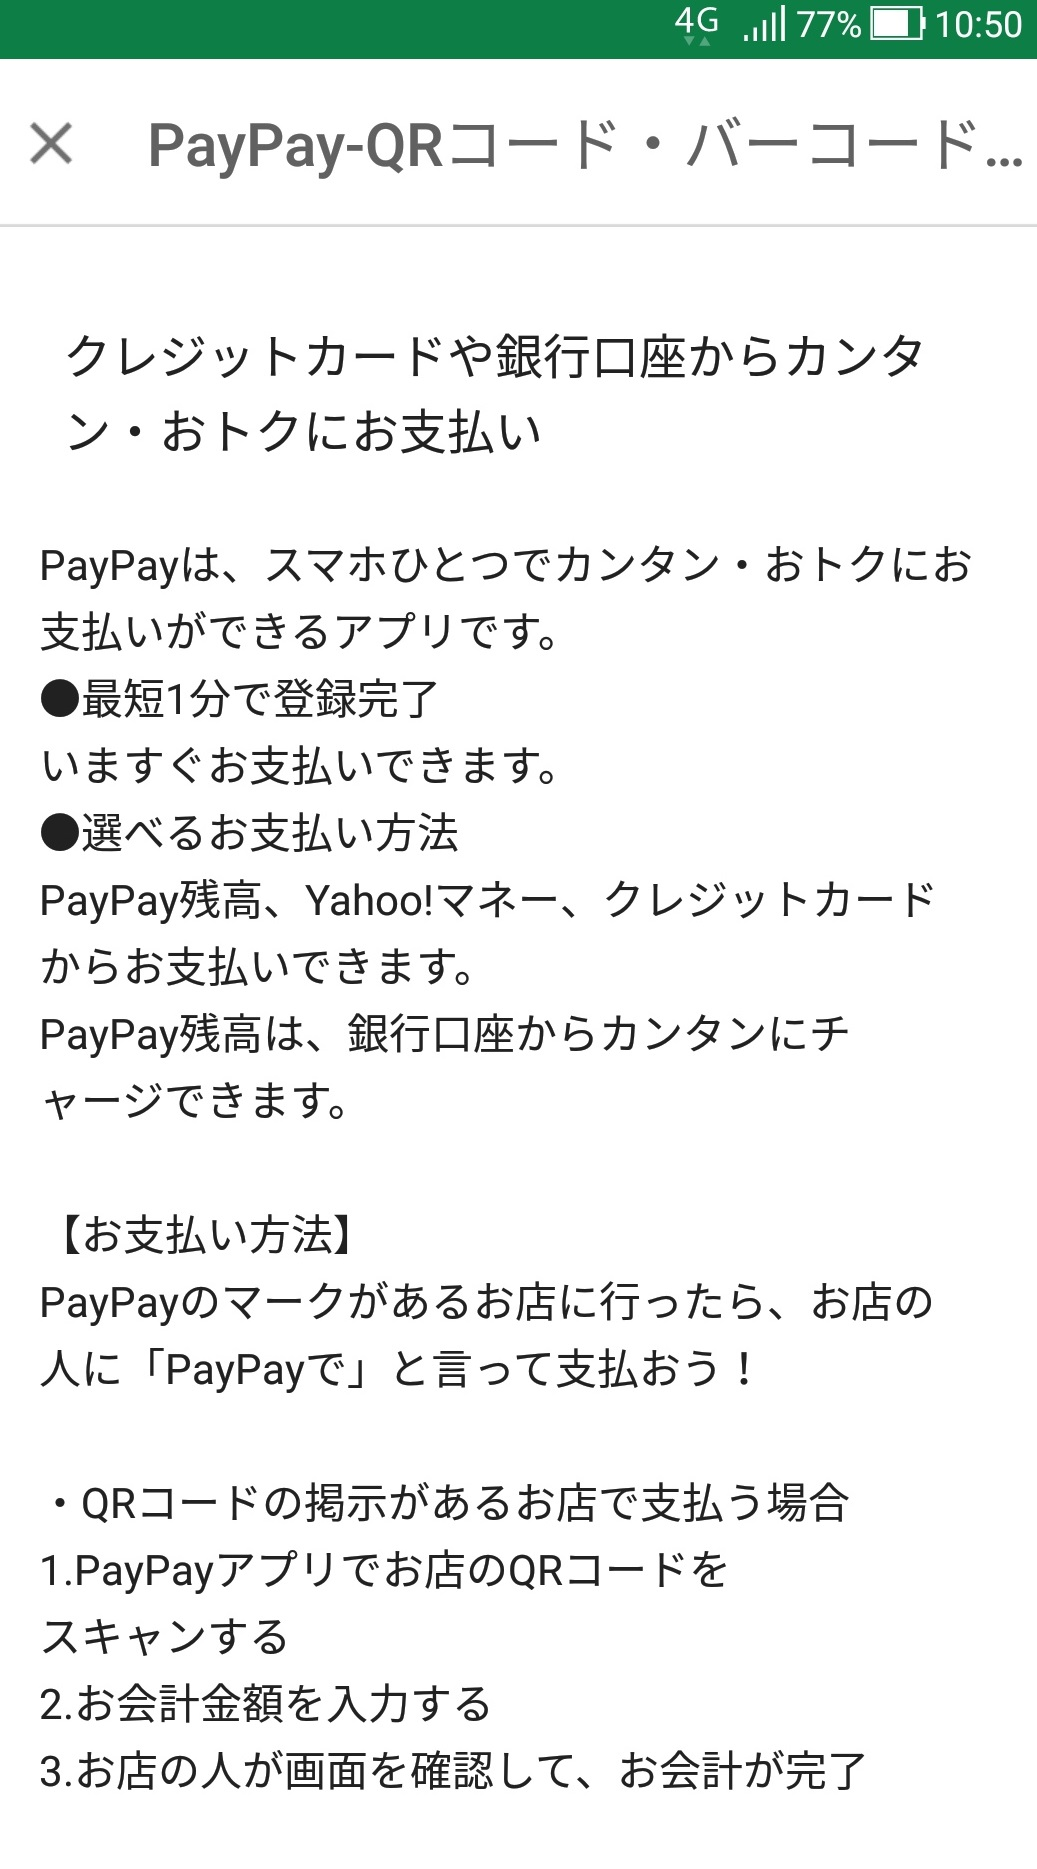 paypay_qrcord_sumaho1.jpg